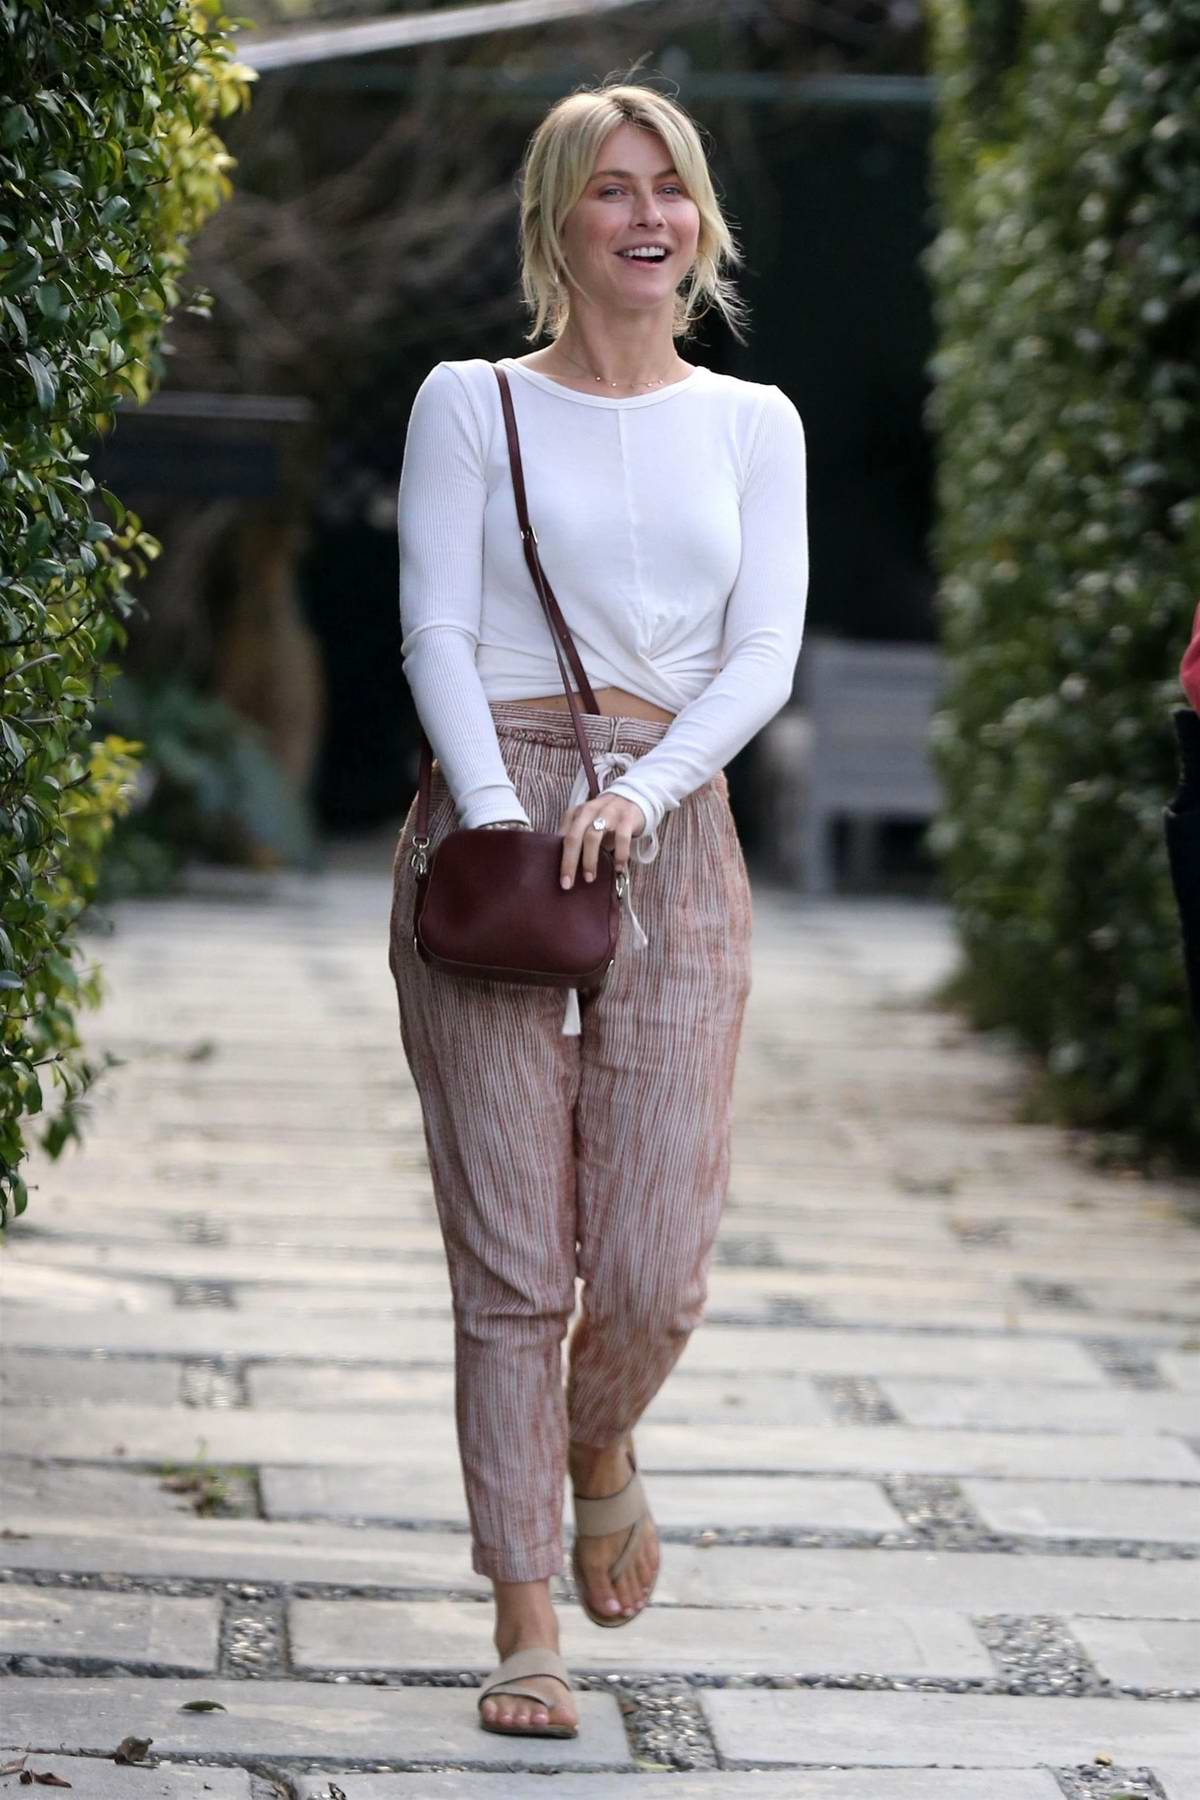 Julianne Hough spotted in a white long sleeve shirt and pink patterned pants while out with a friend in Hollywood, California